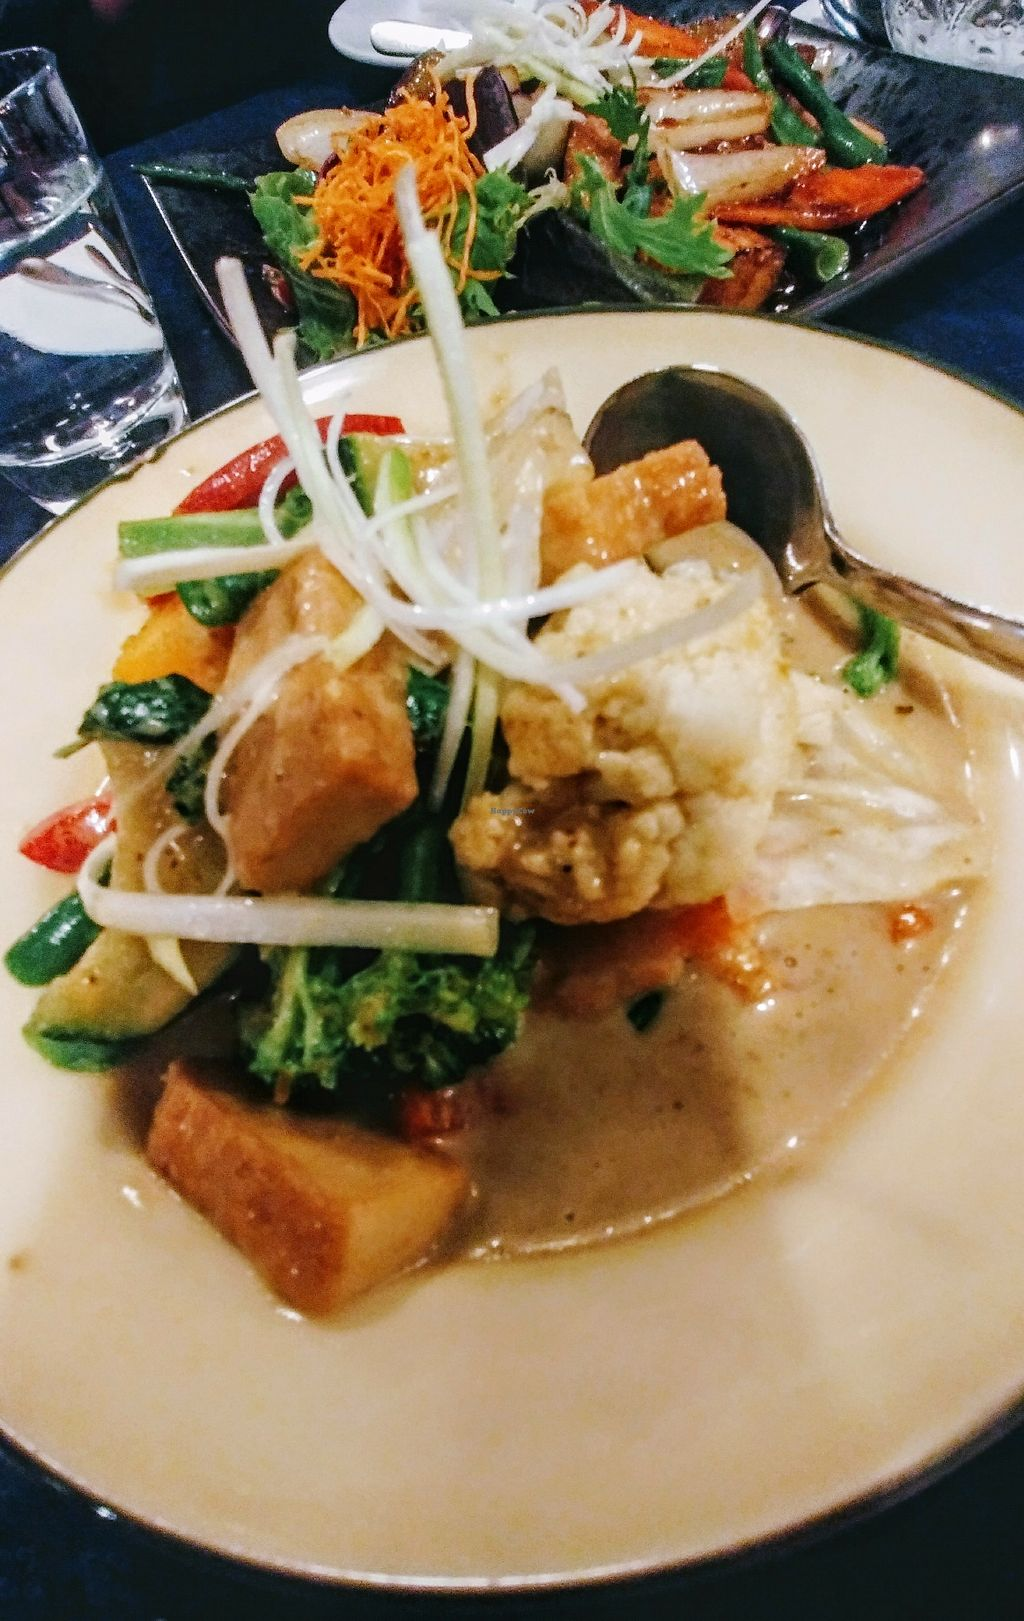 """Photo of enTHAIced  by <a href=""""/members/profile/karlaess"""">karlaess</a> <br/>Gang keow wan puk (green curry)  <br/> April 19, 2018  - <a href='/contact/abuse/image/114234/388061'>Report</a>"""